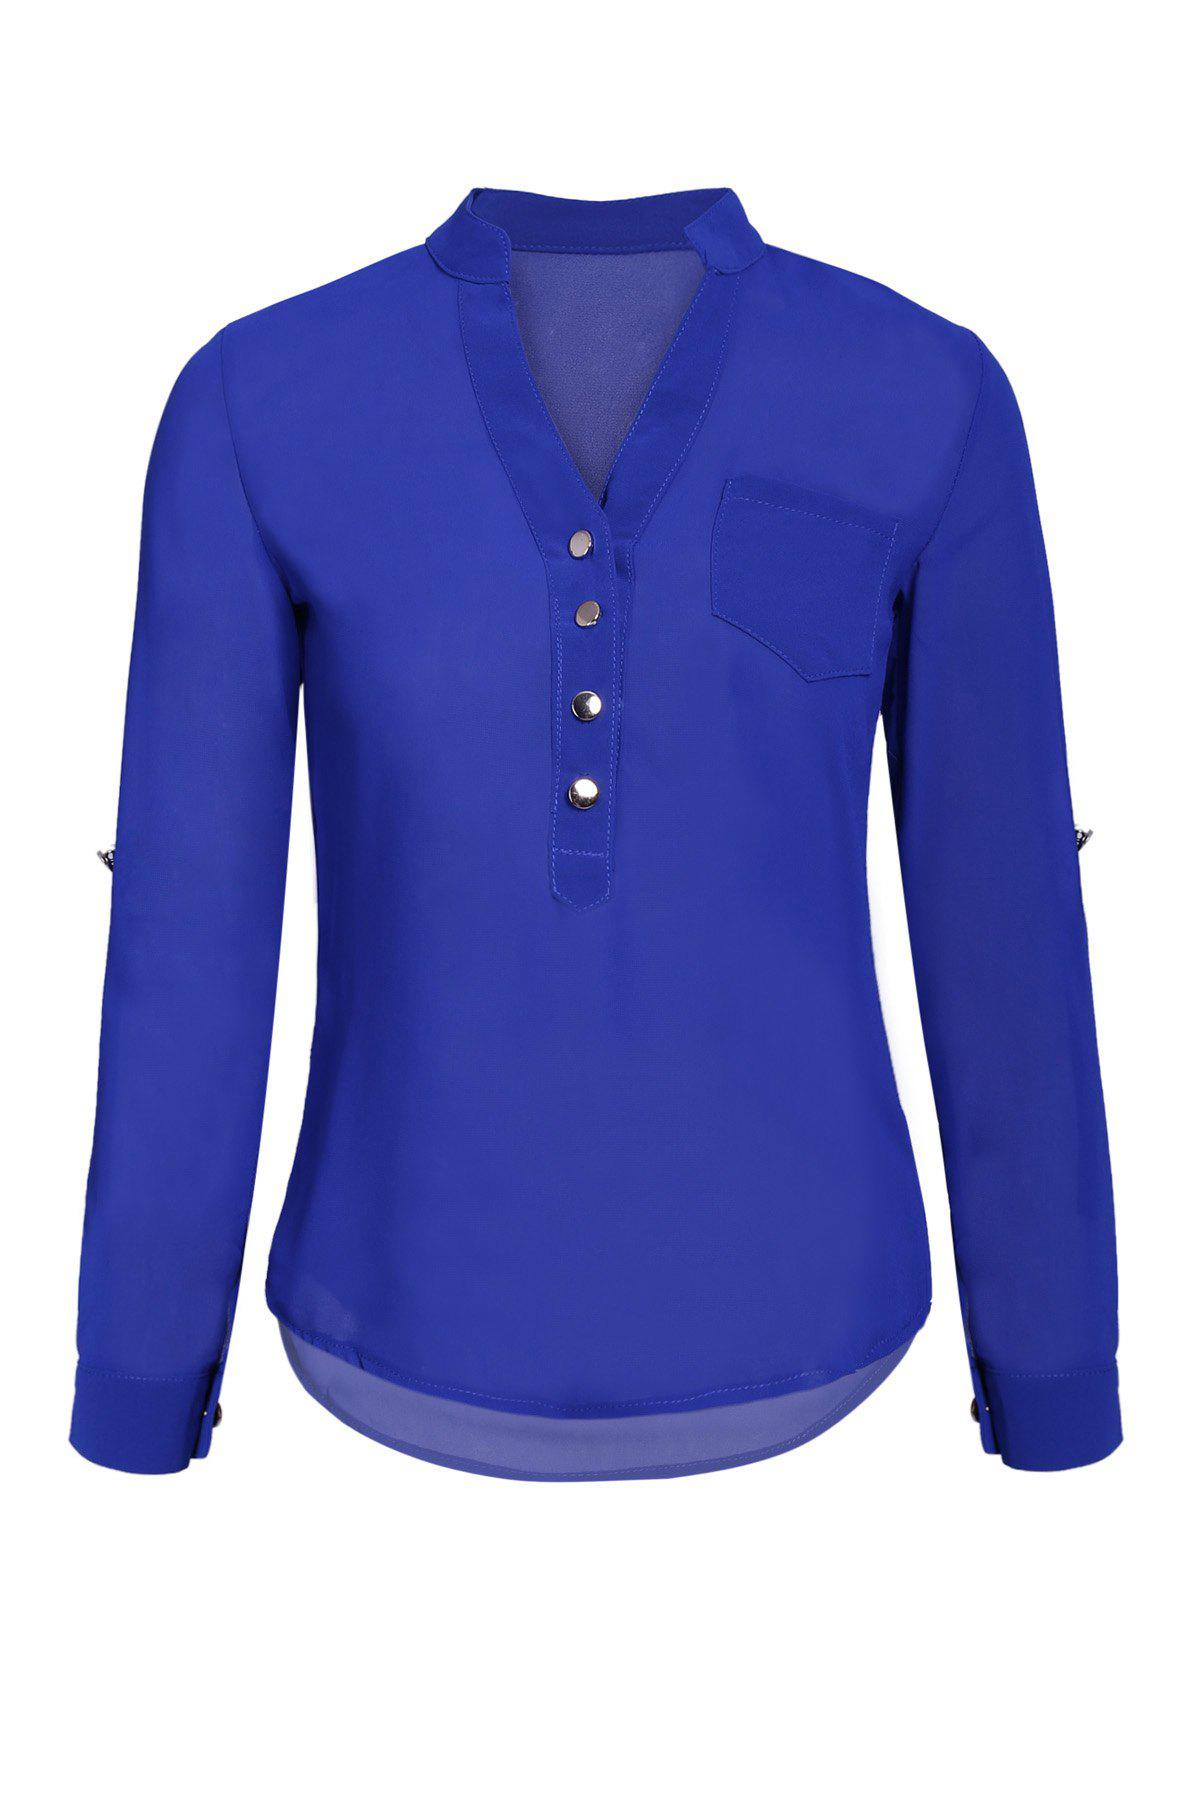 Simple Style V-Neck Chiffon Solid Color Long Sleeve Blouse For Women - BLUE M